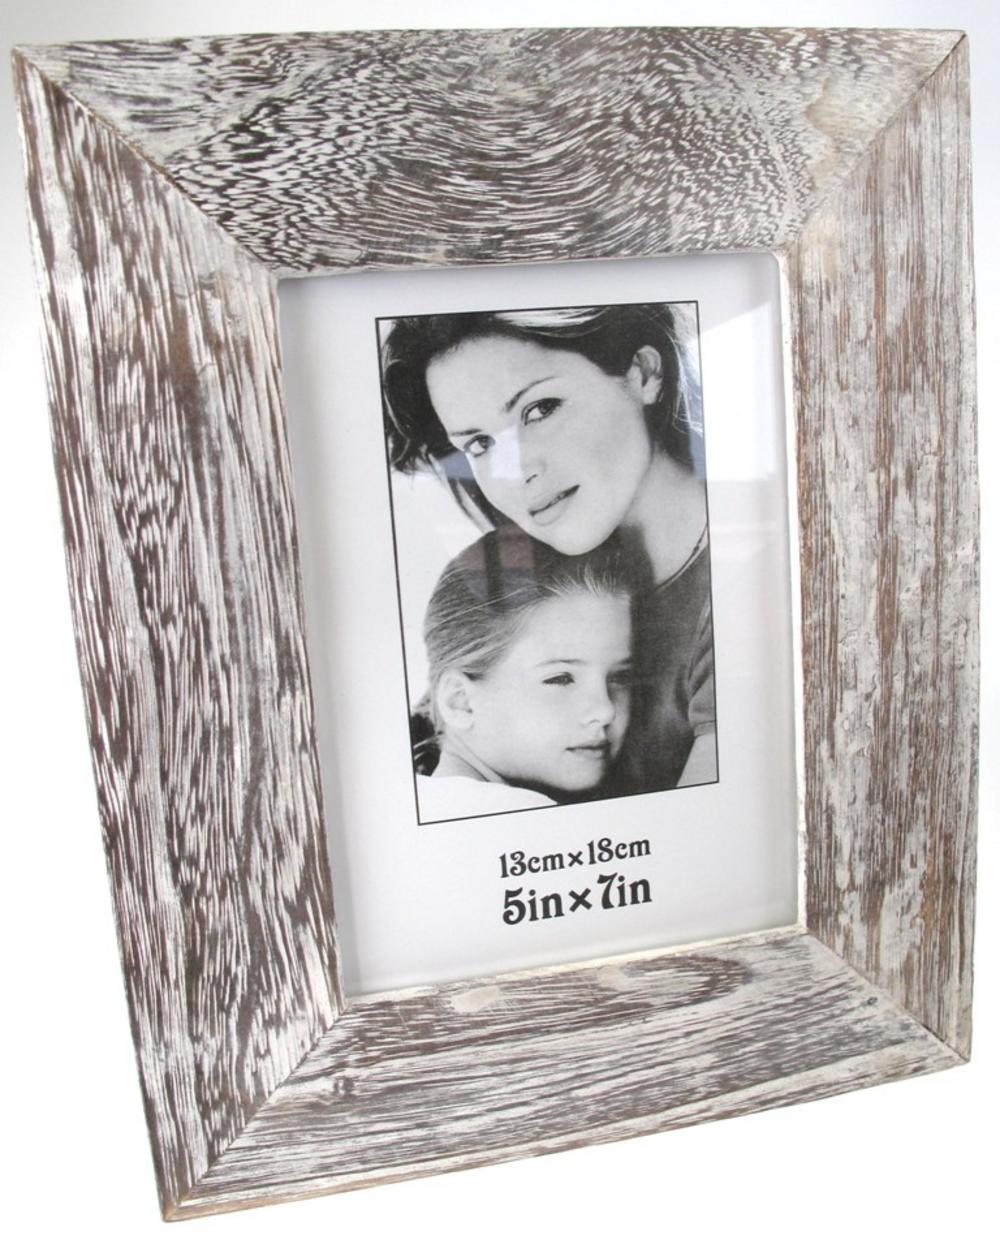 Stone The Crows Wood Relief Large Photo Frame 5X7